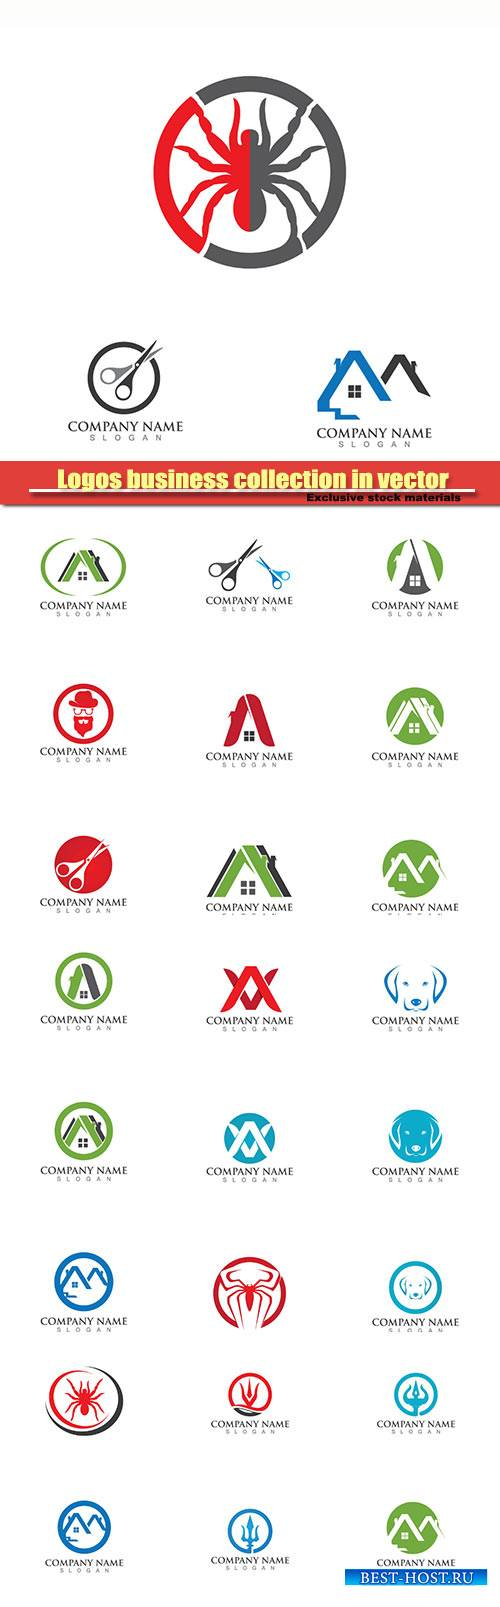 Logos business collection in vector #27